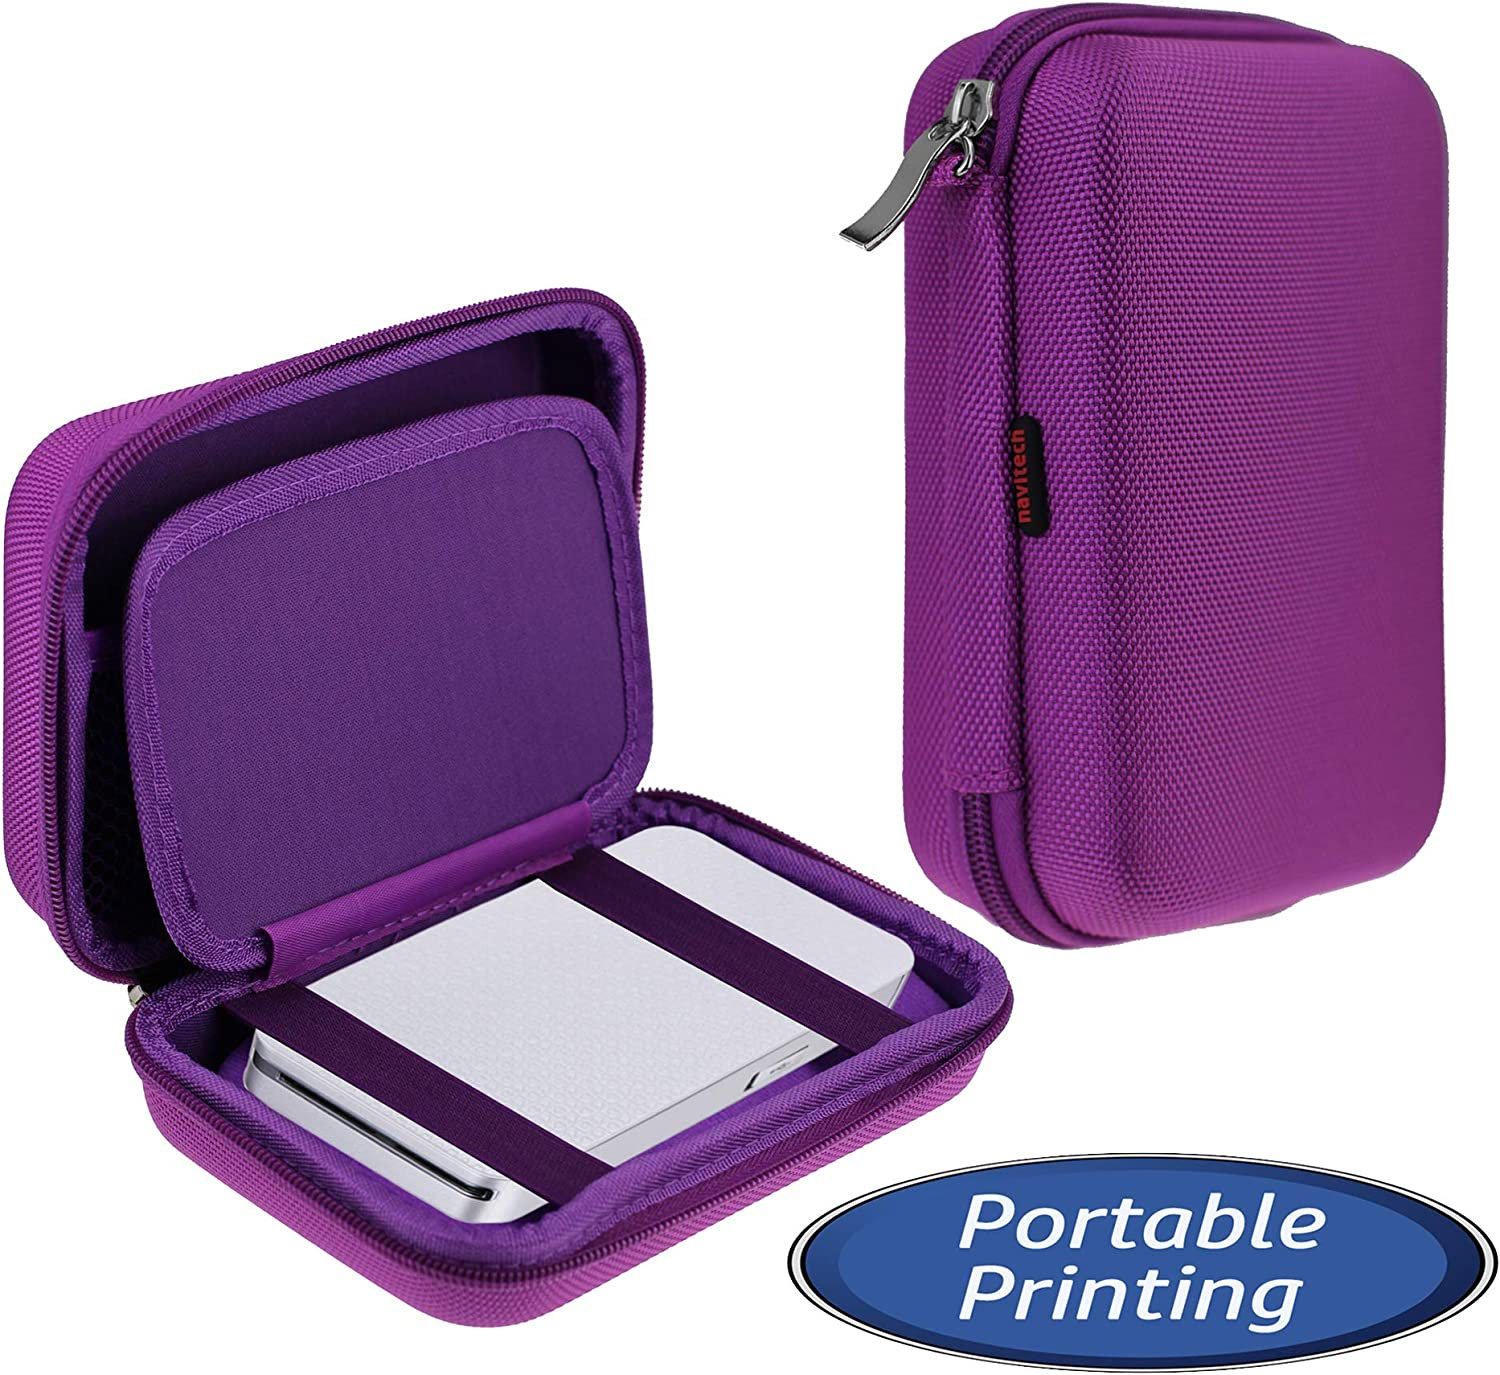 Navitech Purple Pocket/Portable/Mobile Printer Carrying Case Compatible with The HP Sprocket Plus (Mesh Pocket Compatible with The Cable and Printing Paper)